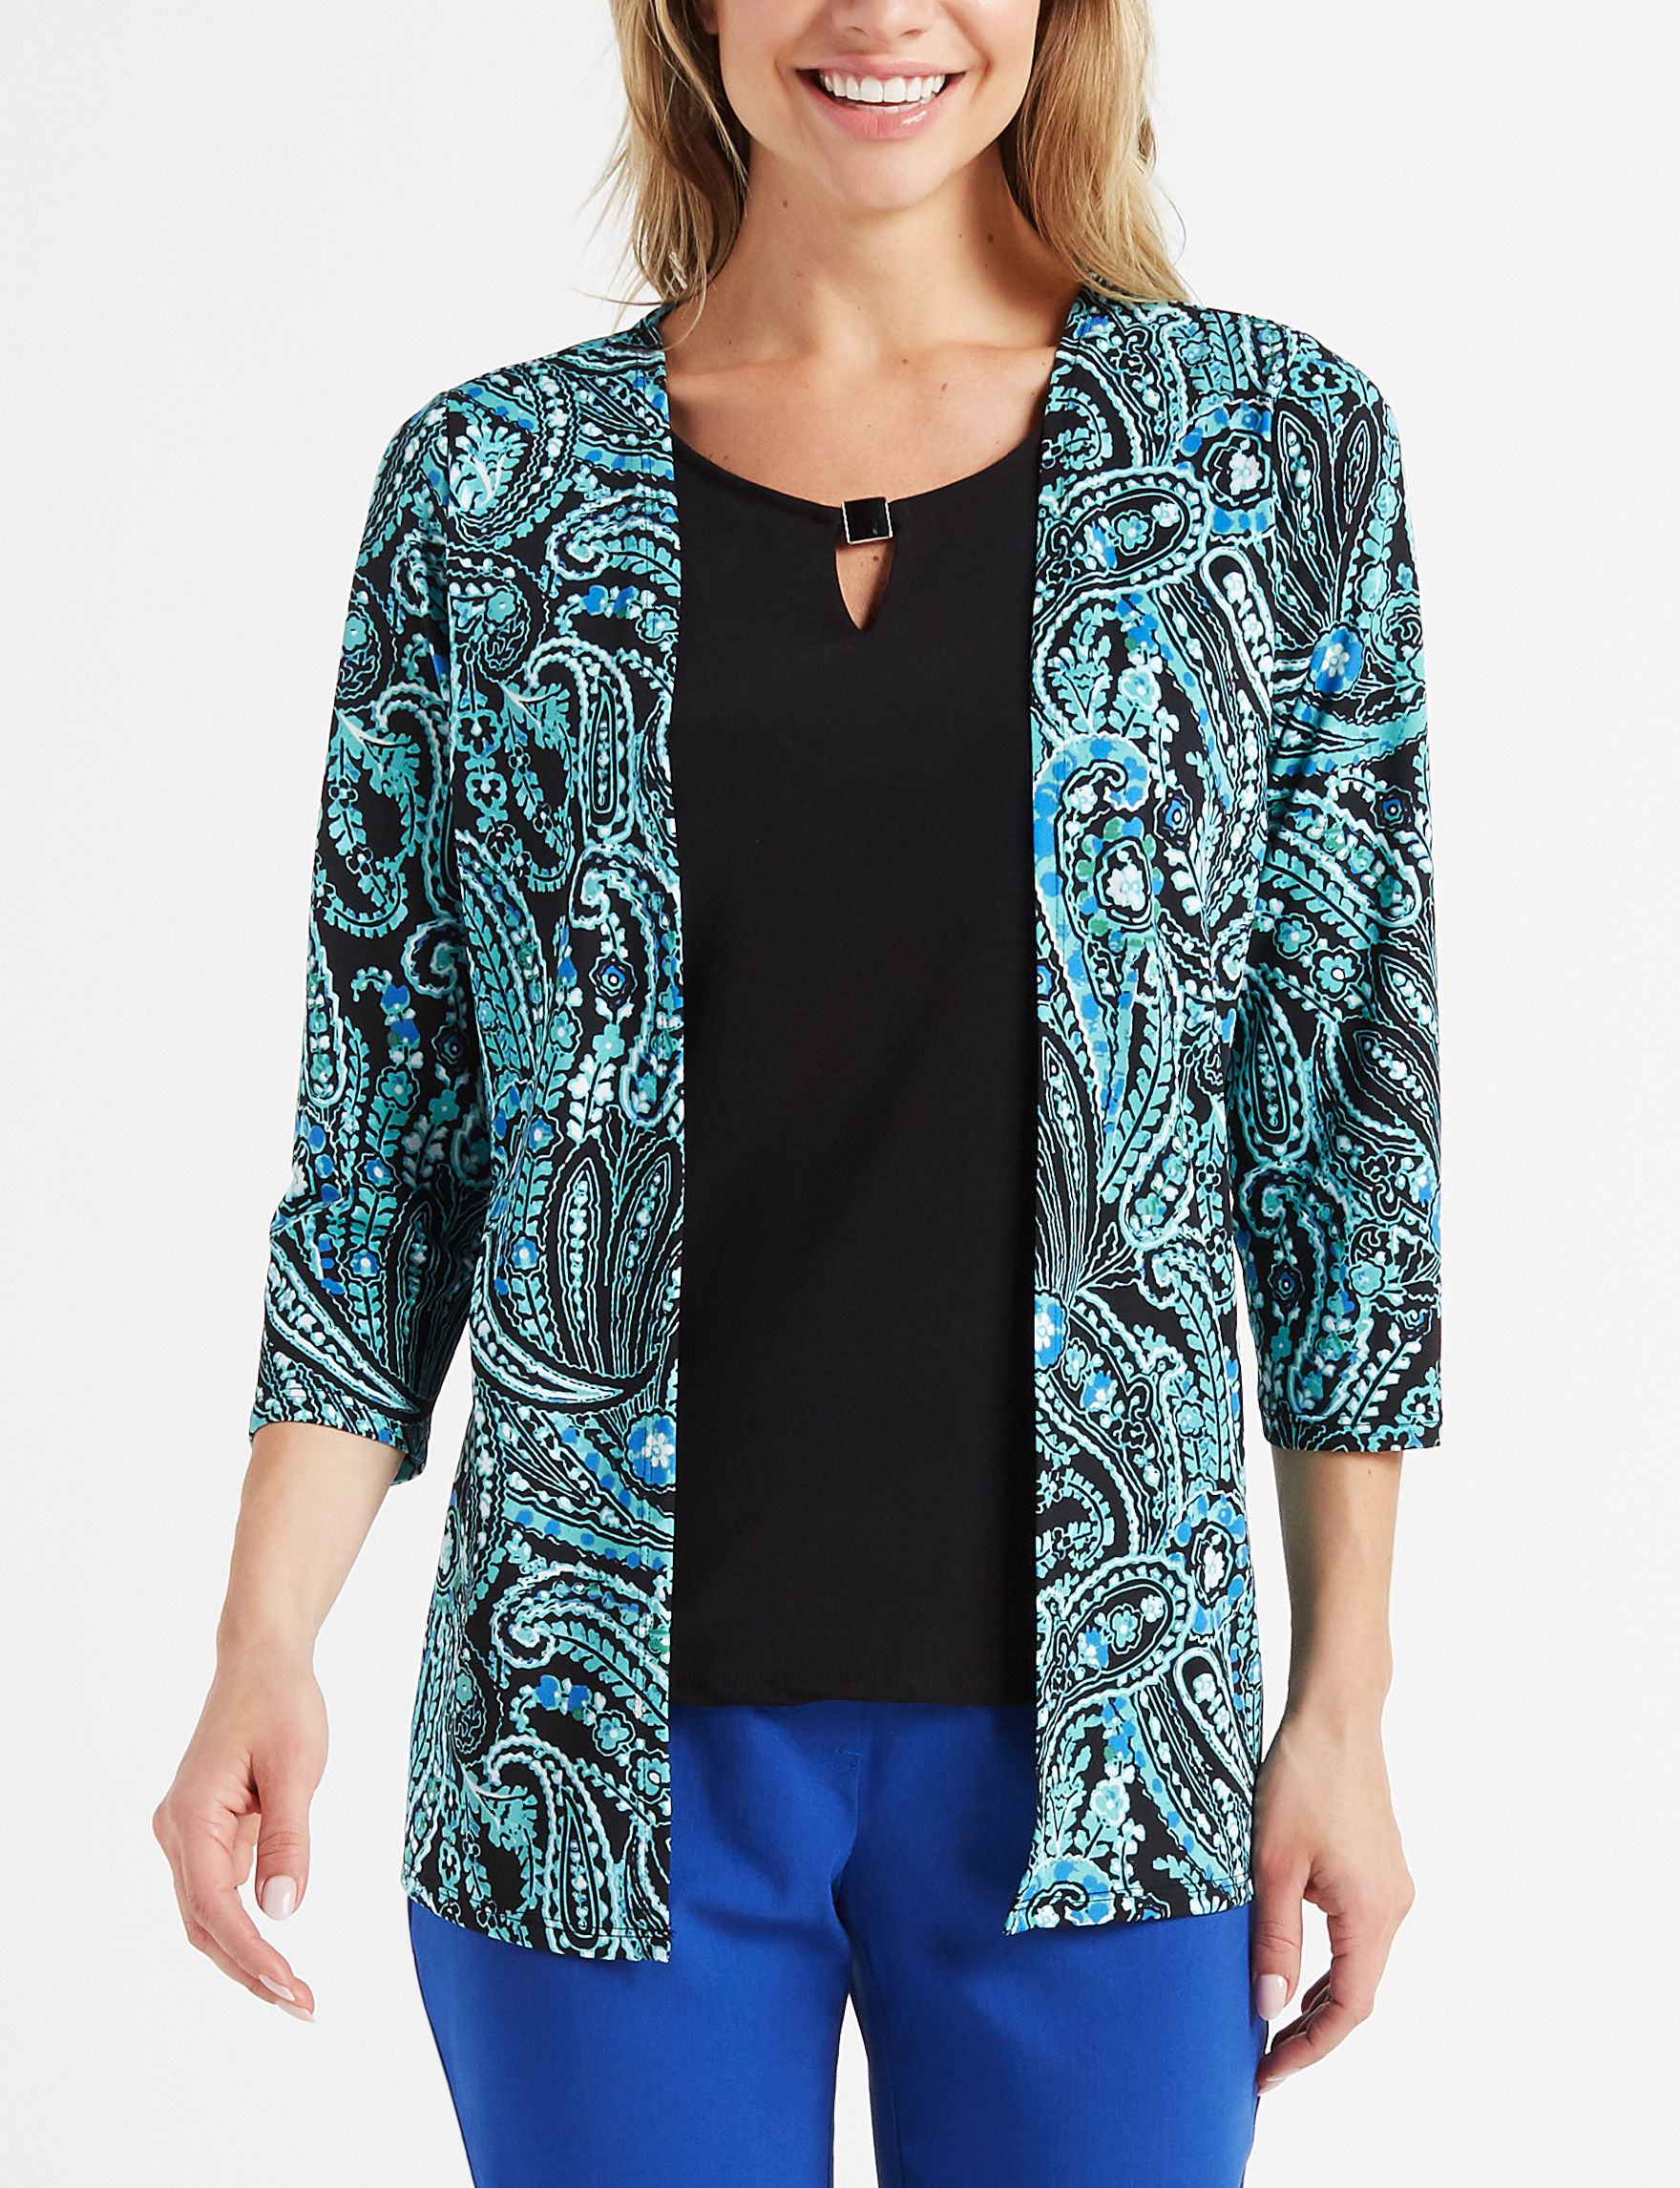 Rebecca Malone Teal Paisley Shirts & Blouses